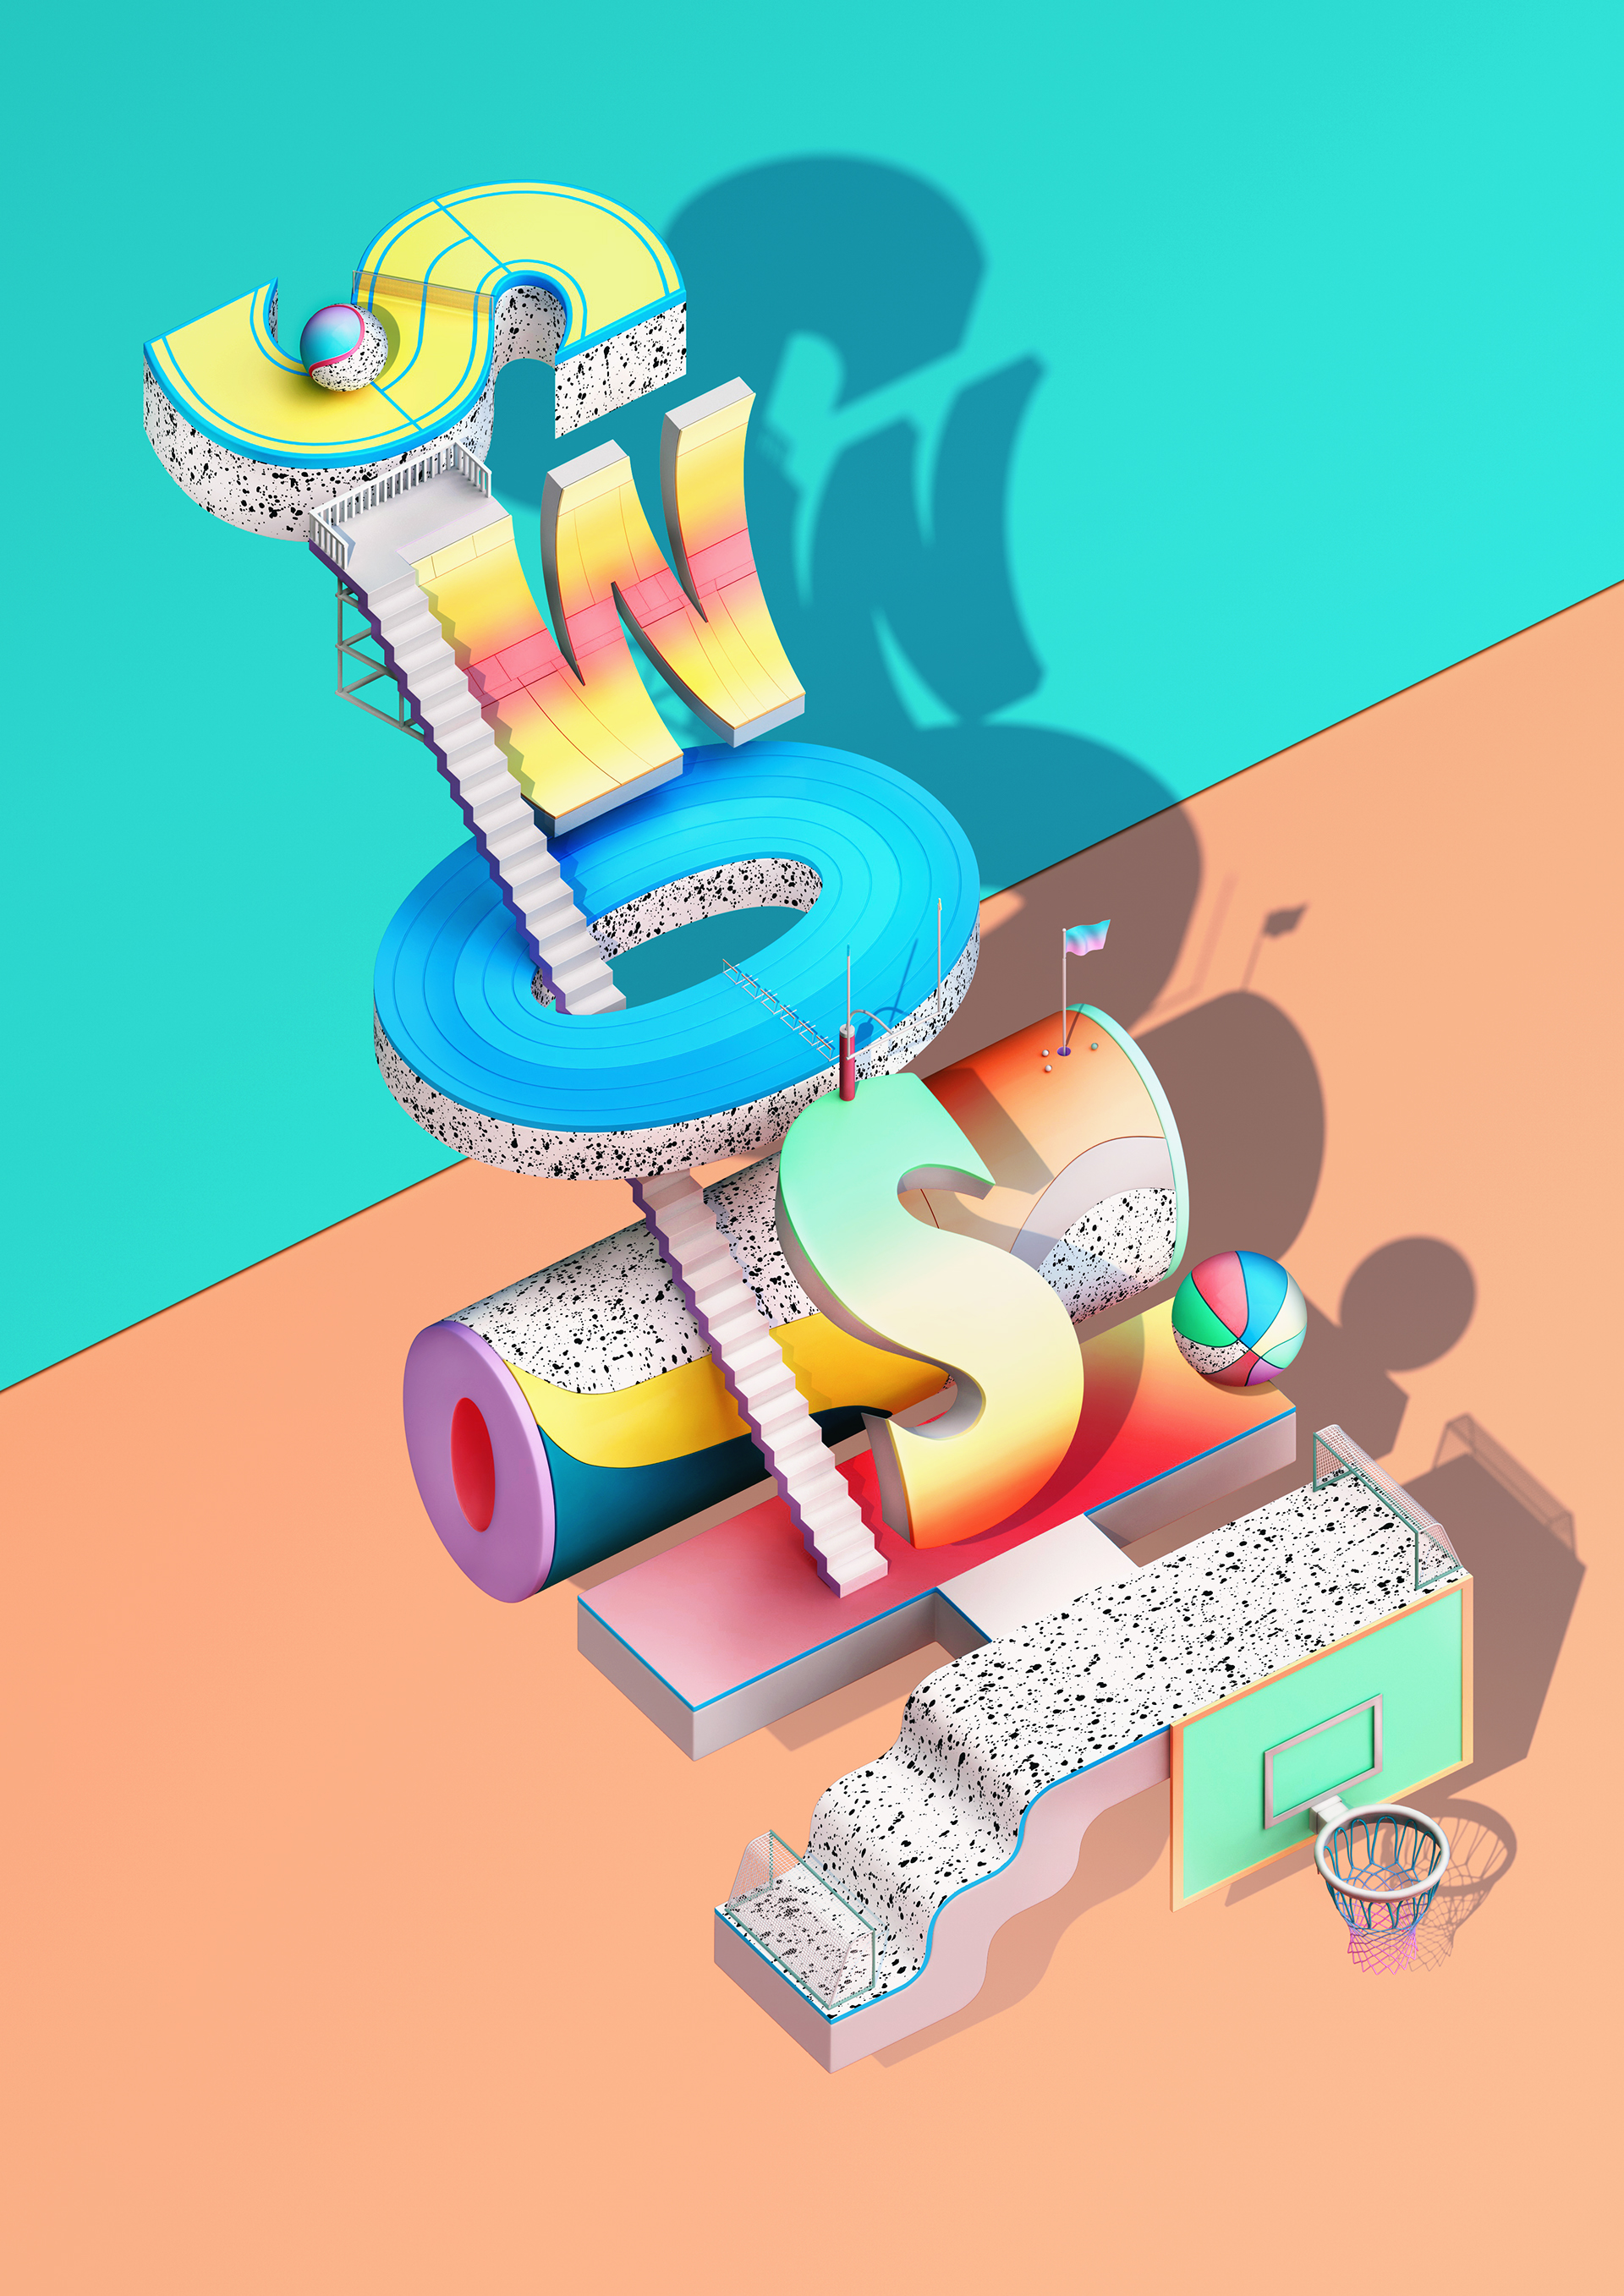 3D Type Collection 1 (2017) by ILOVEDUST